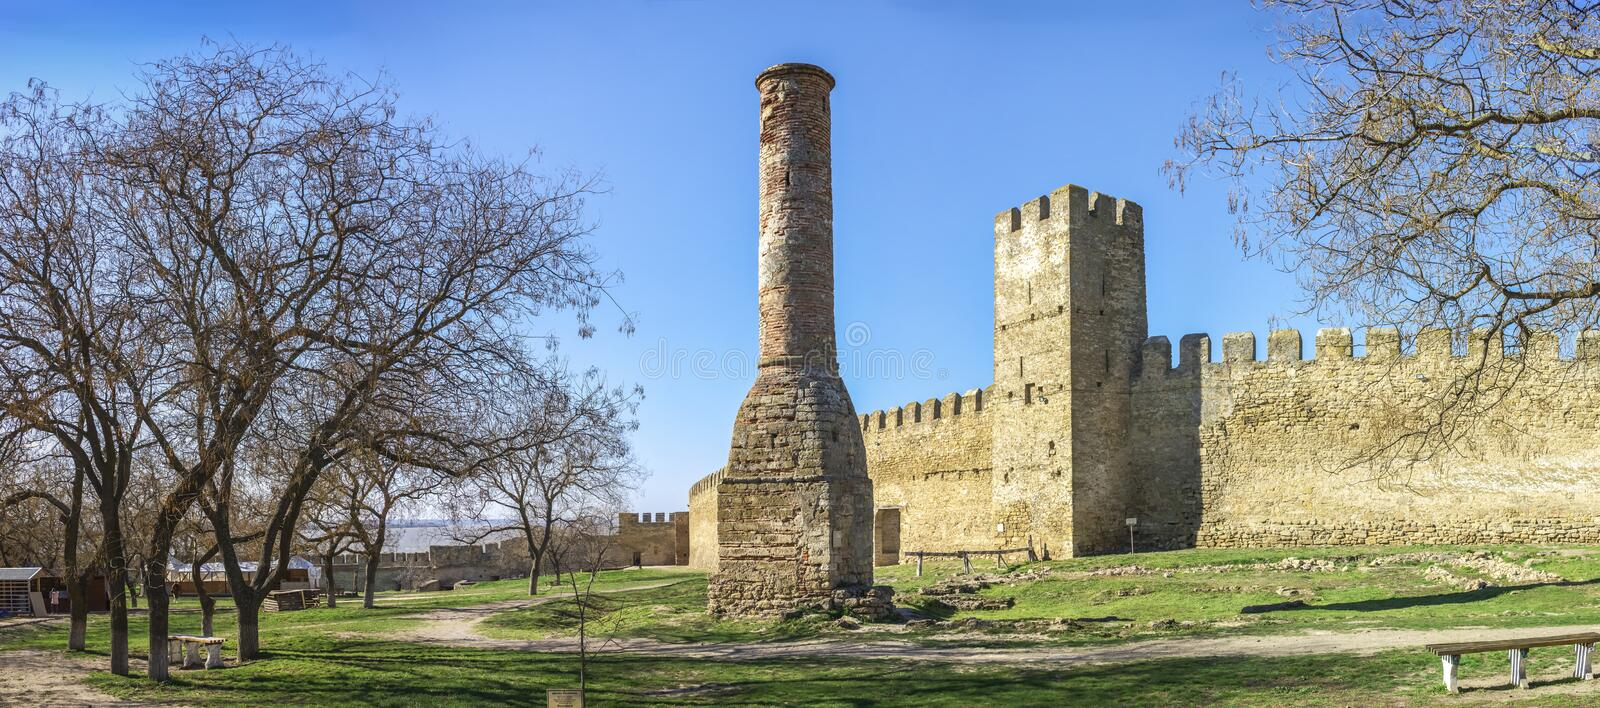 Fortress Walls of the Akkerman Citadel in Ukraine. Akkerman, Ukraine - 03.23.2019. Panoramic view of the Fortress walls and towers from the inside of the royalty free stock photo